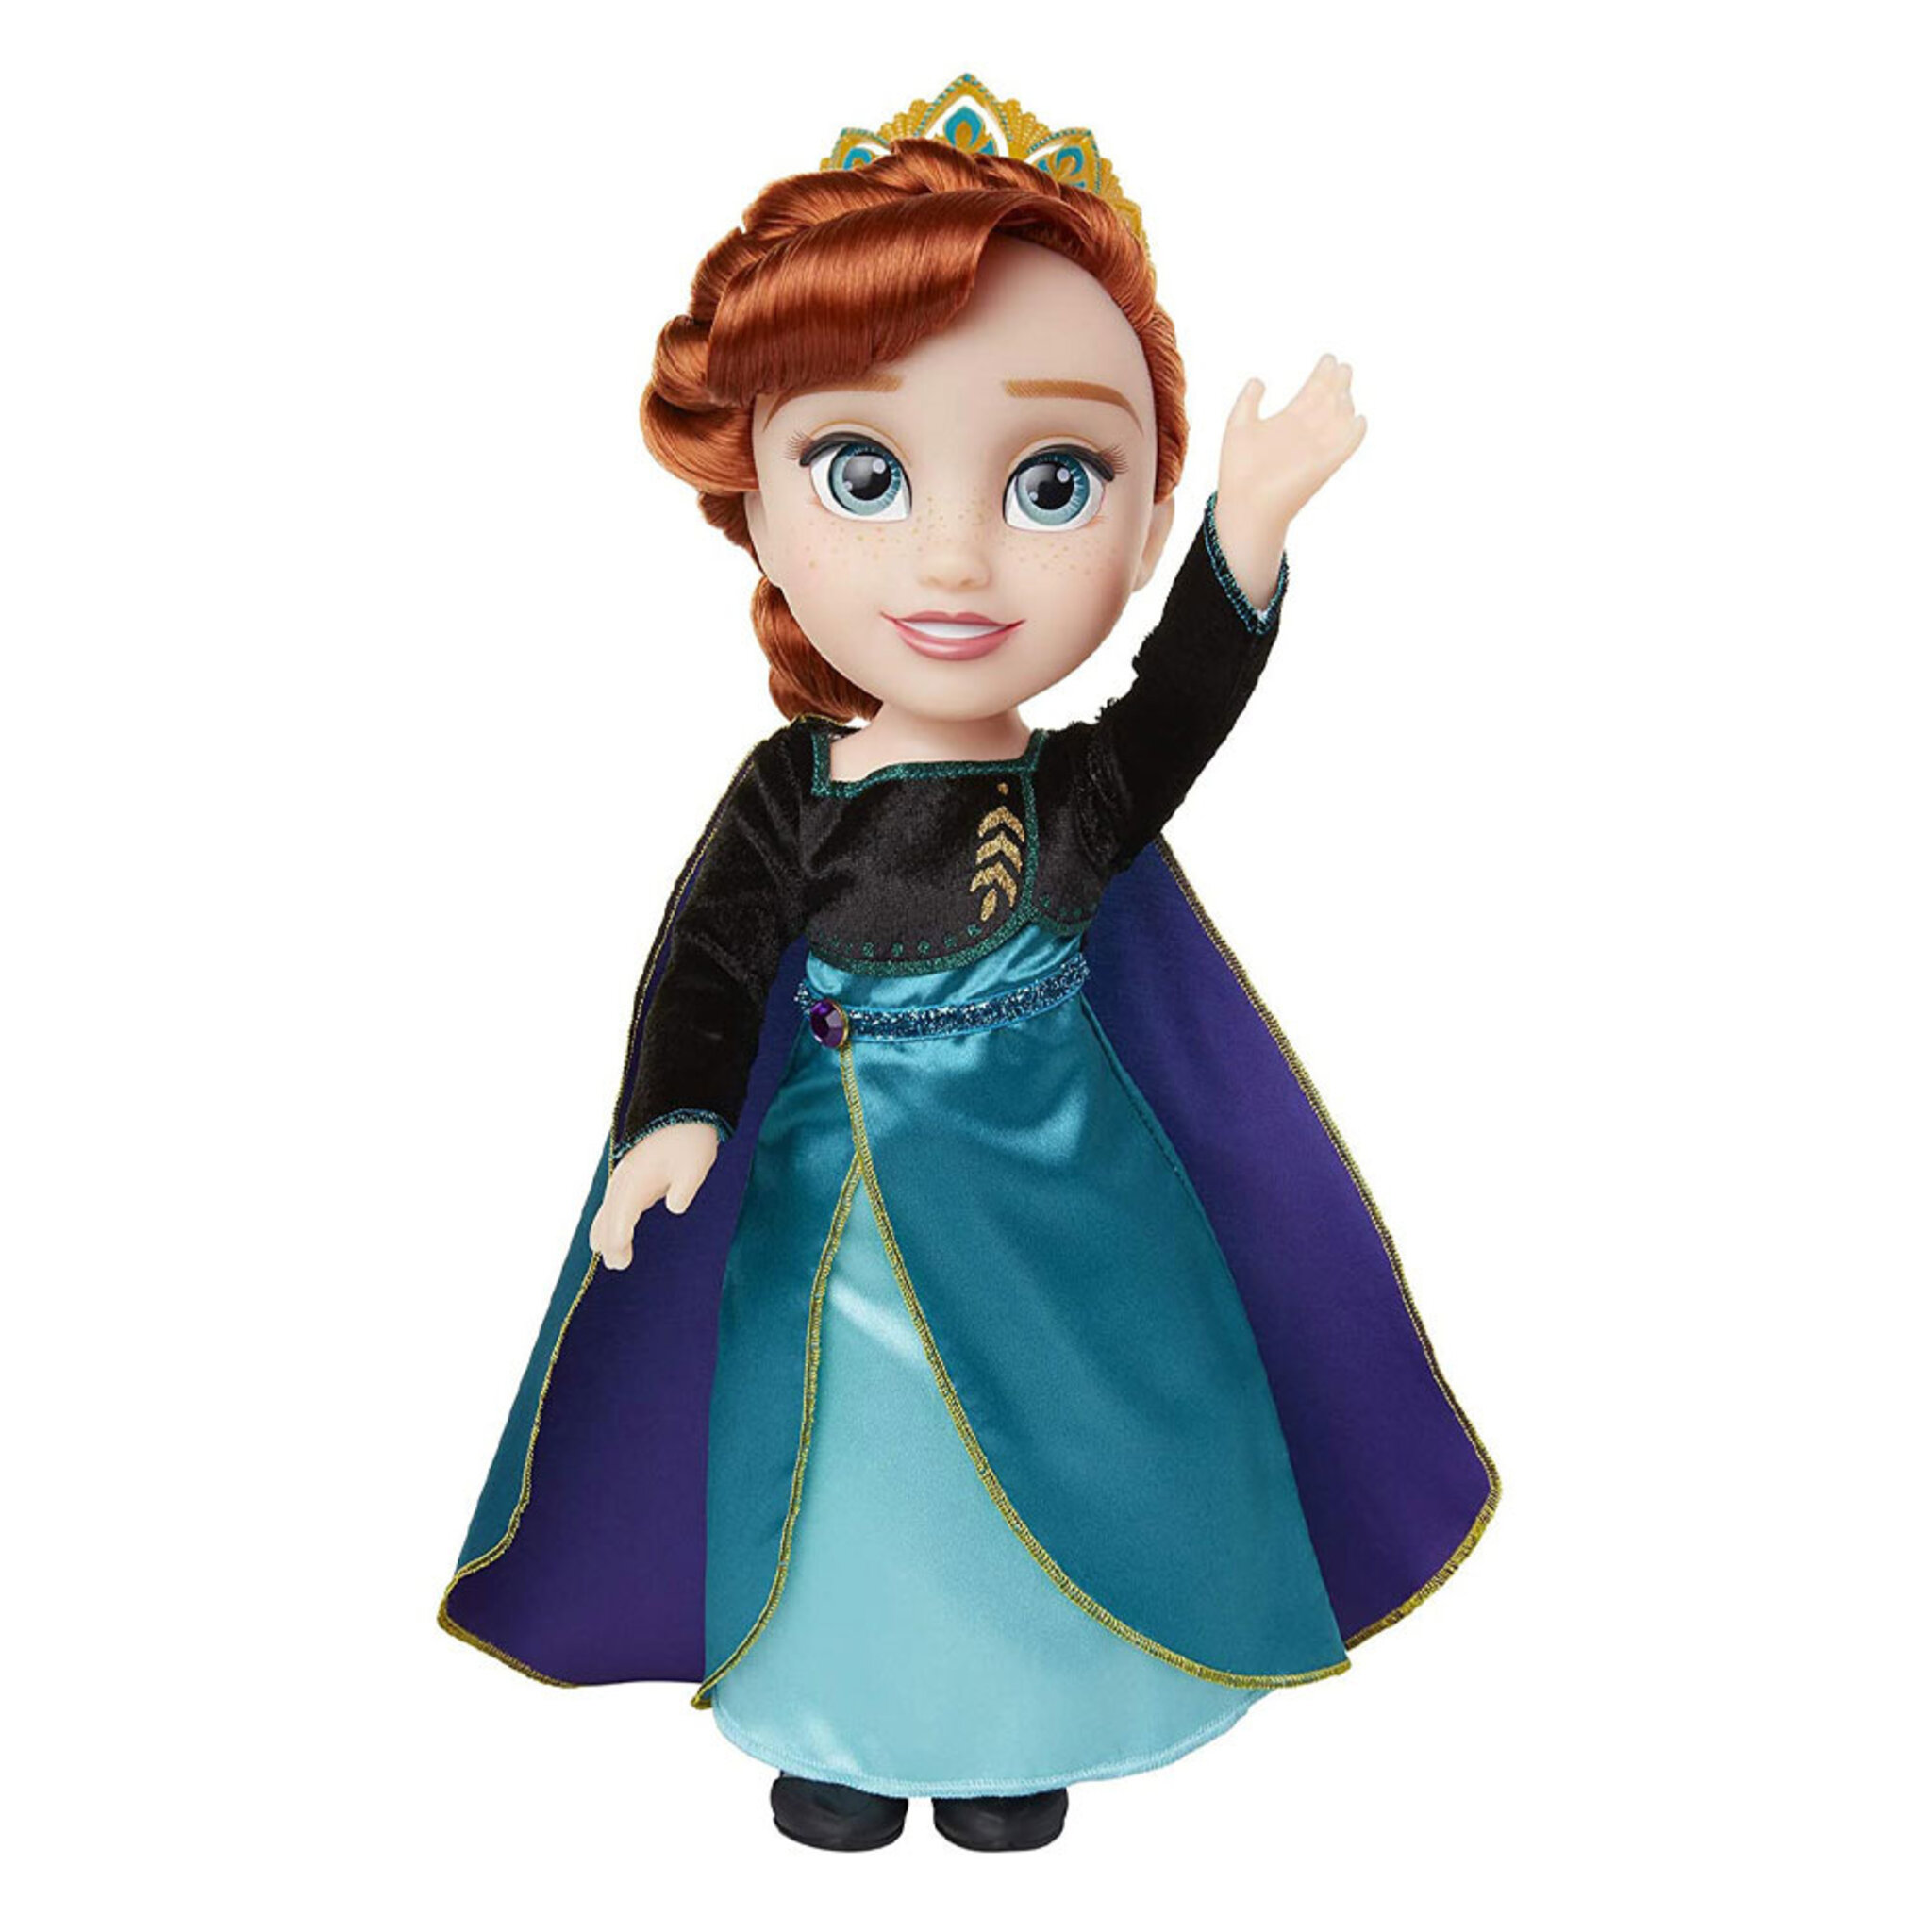 Frost II Toddler Doll Queen Anna